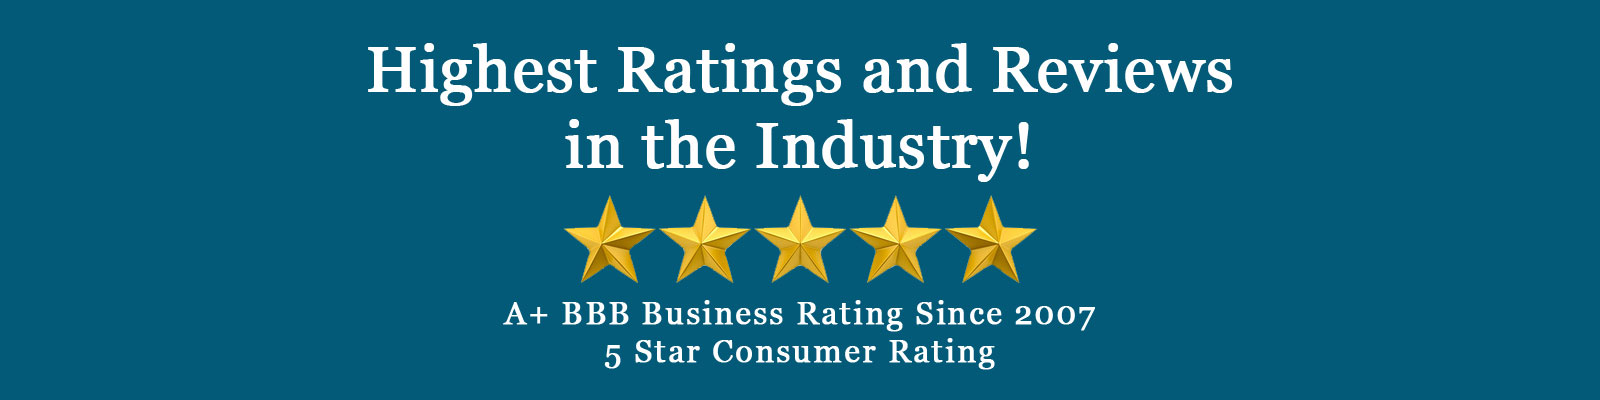 Highest Ratings and Reviews